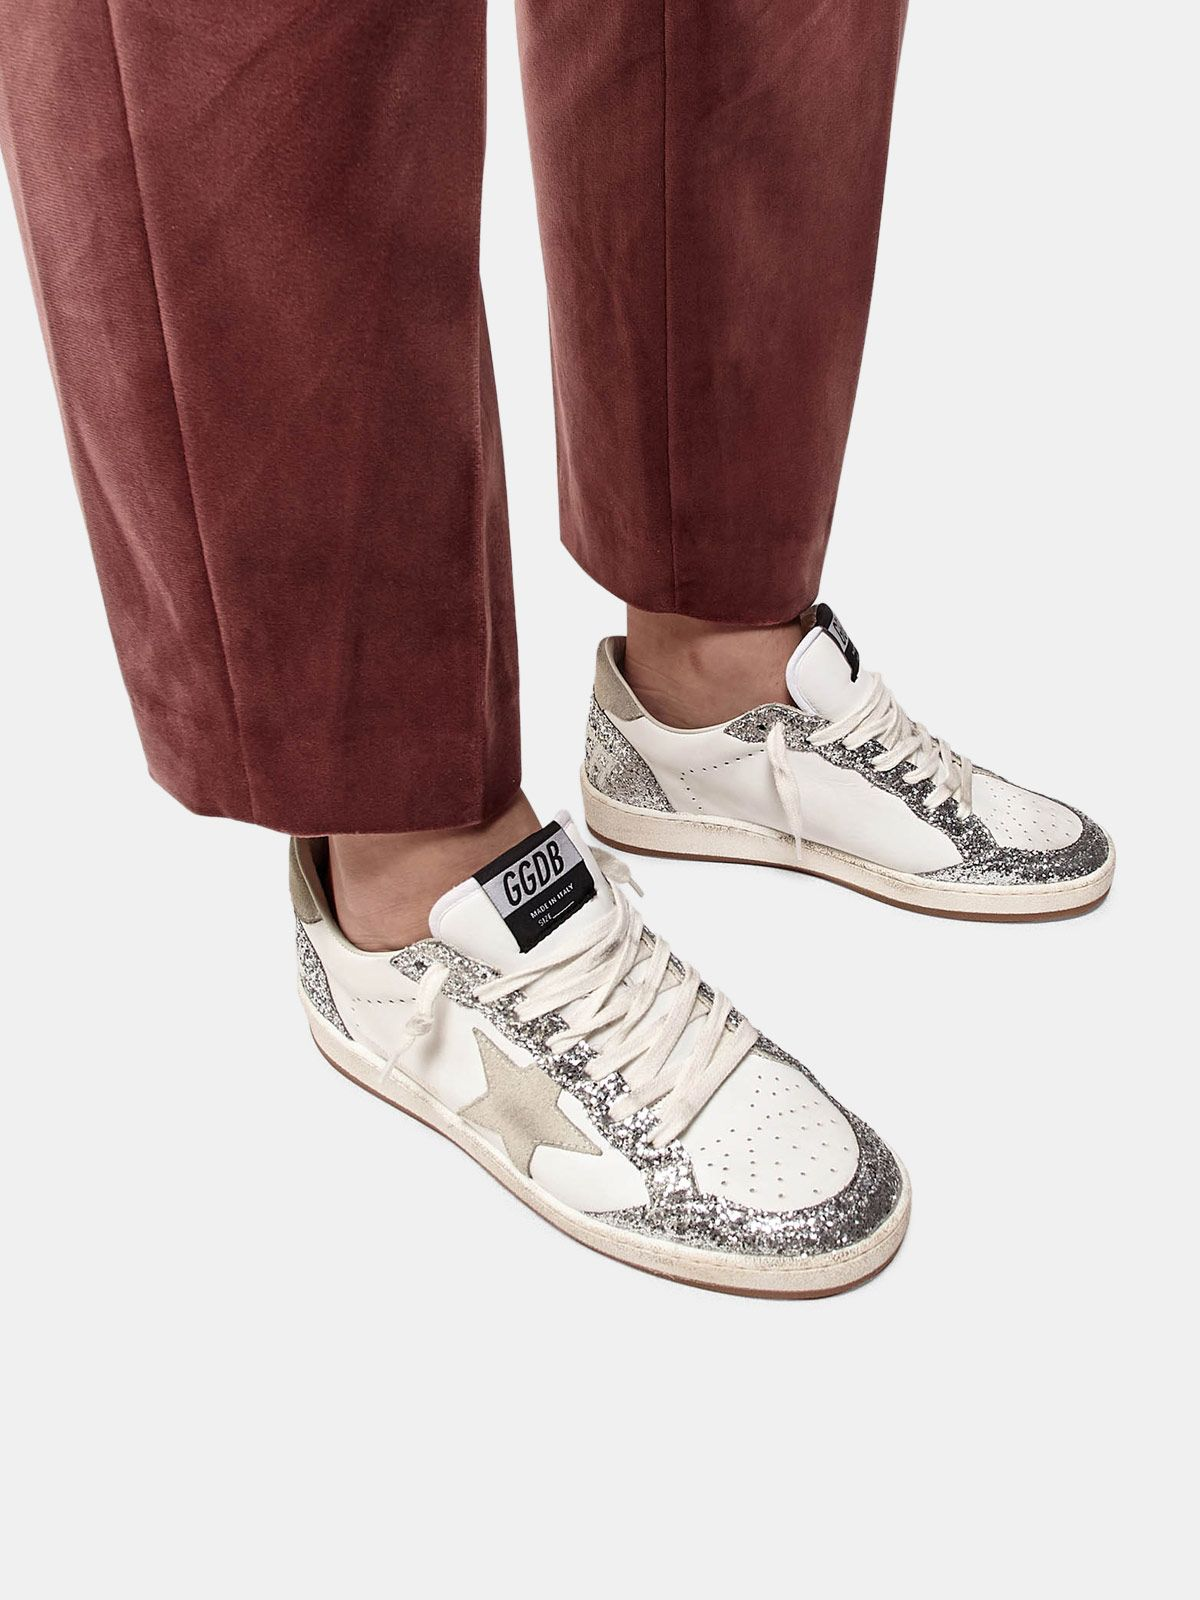 Golden Goose - Ball Star sneakers in leather with glittery inserts in